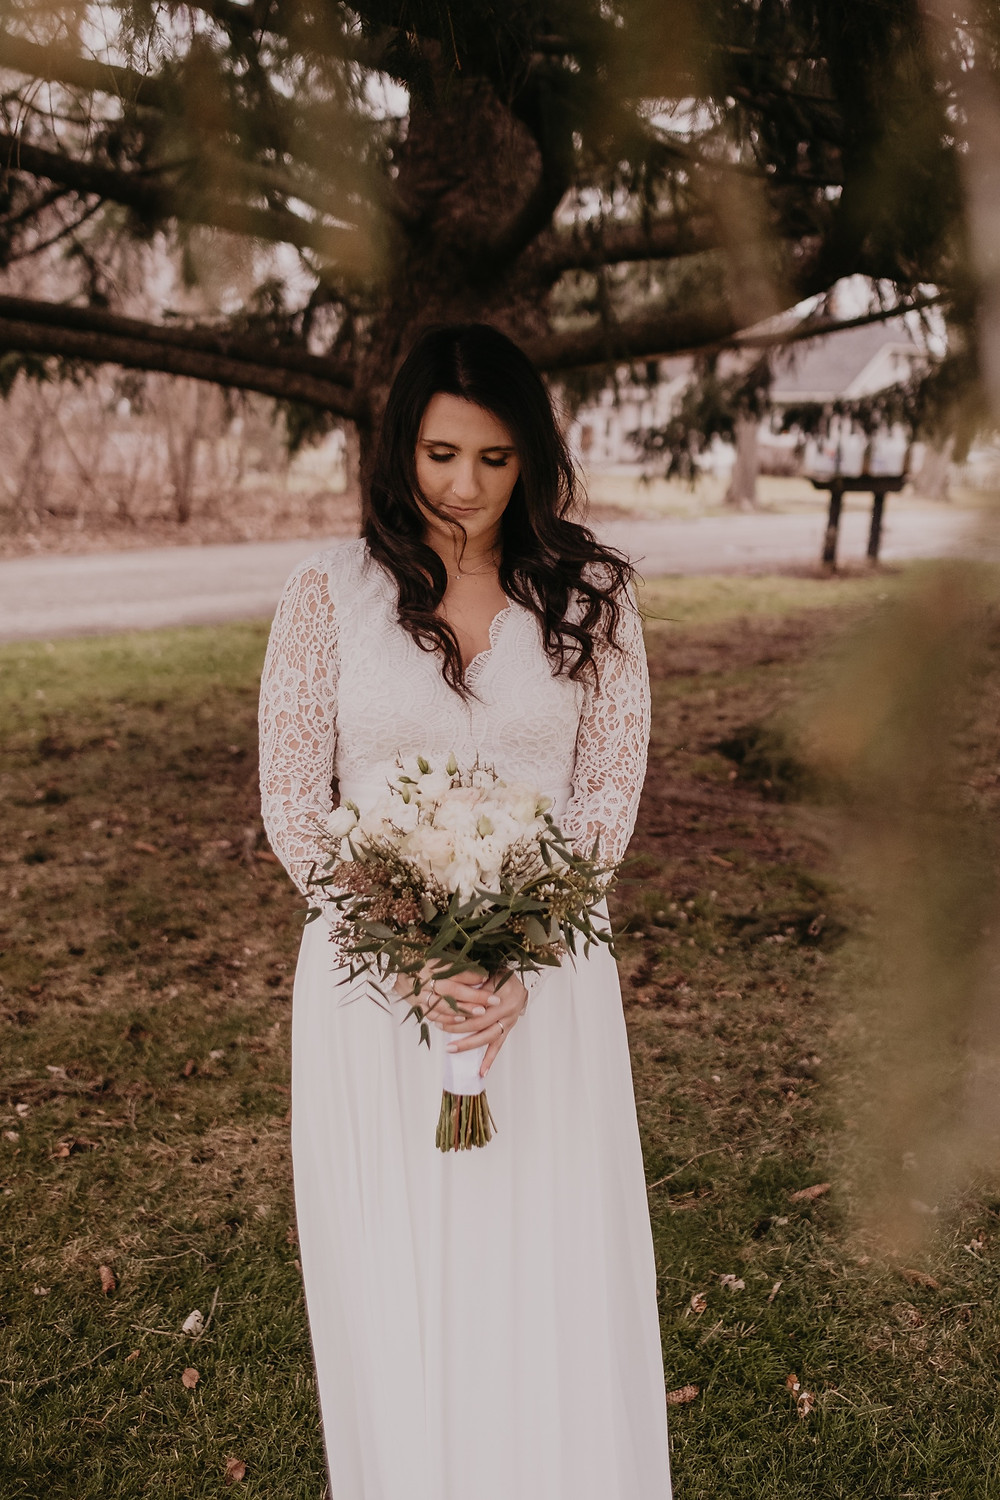 Bride on wedding day holding white bouquet. Photographed by Nicole Leanne Photography